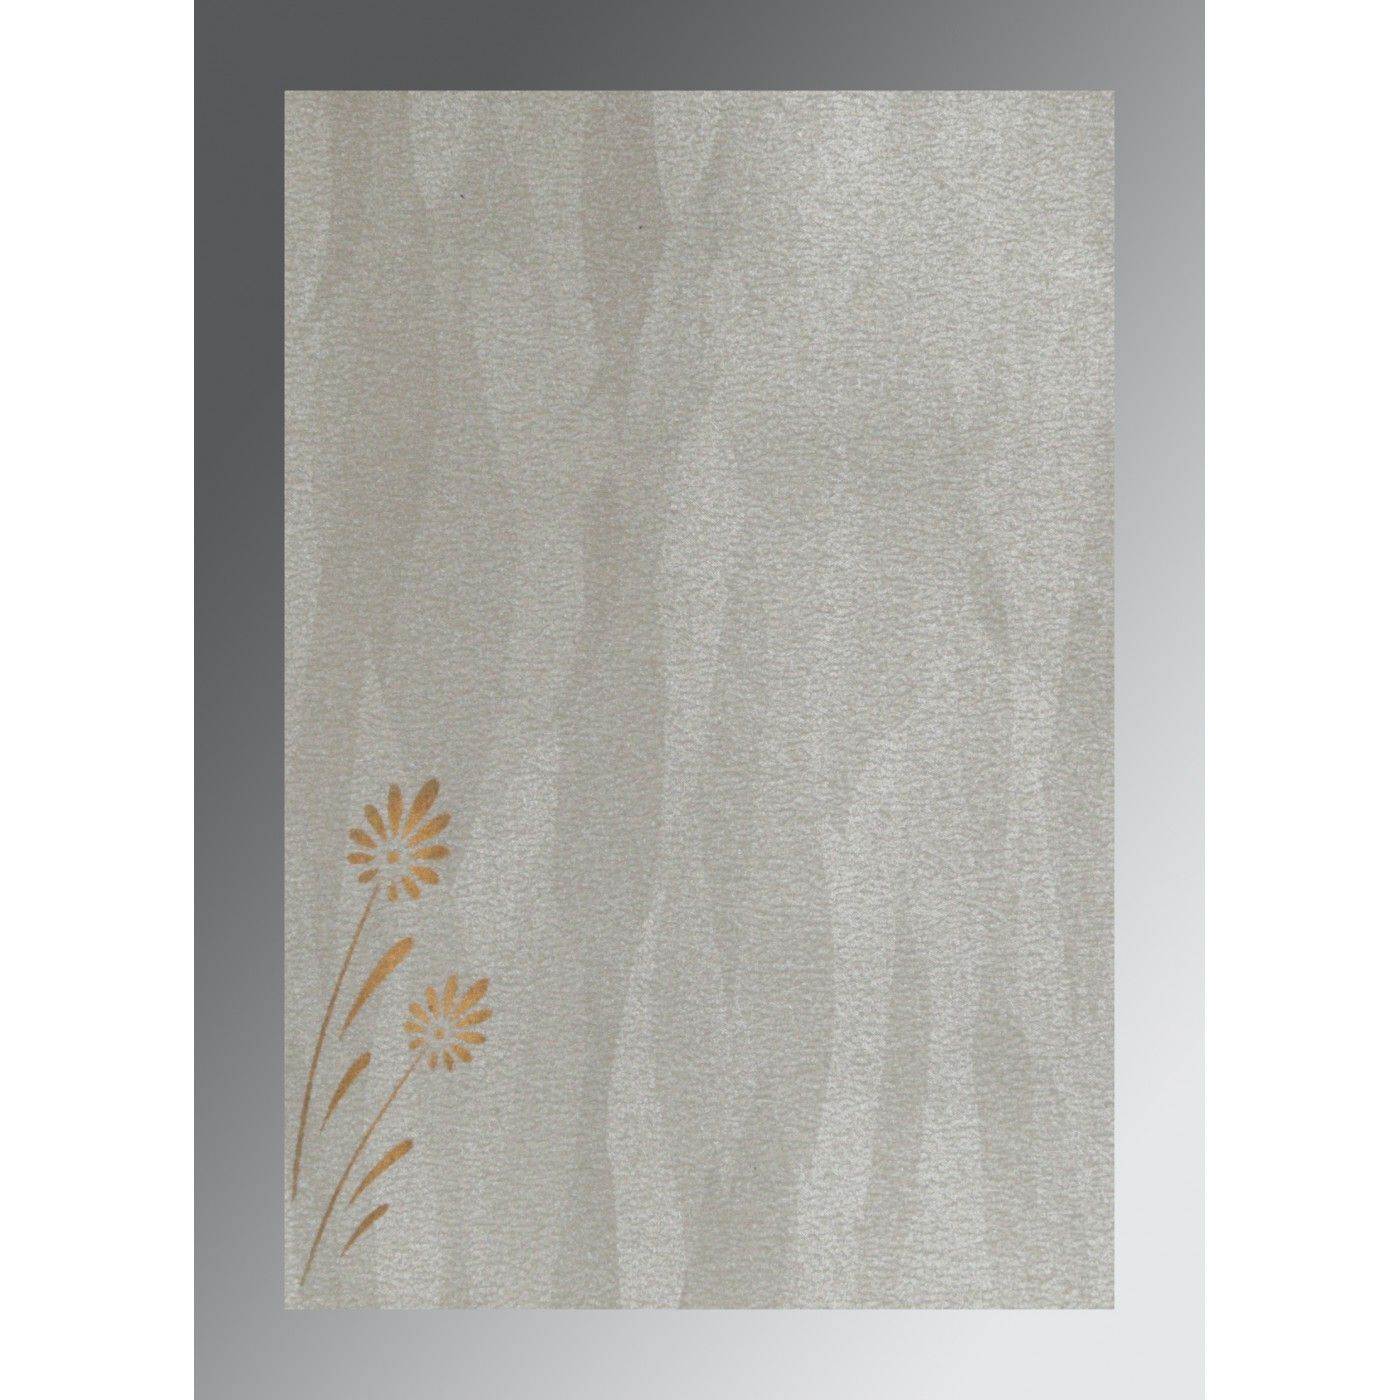 METALLIC GREY SHIMMERY FLORAL THEMED - EMBOSSED WEDDING CARD : CD-1378 - IndianWeddingCards